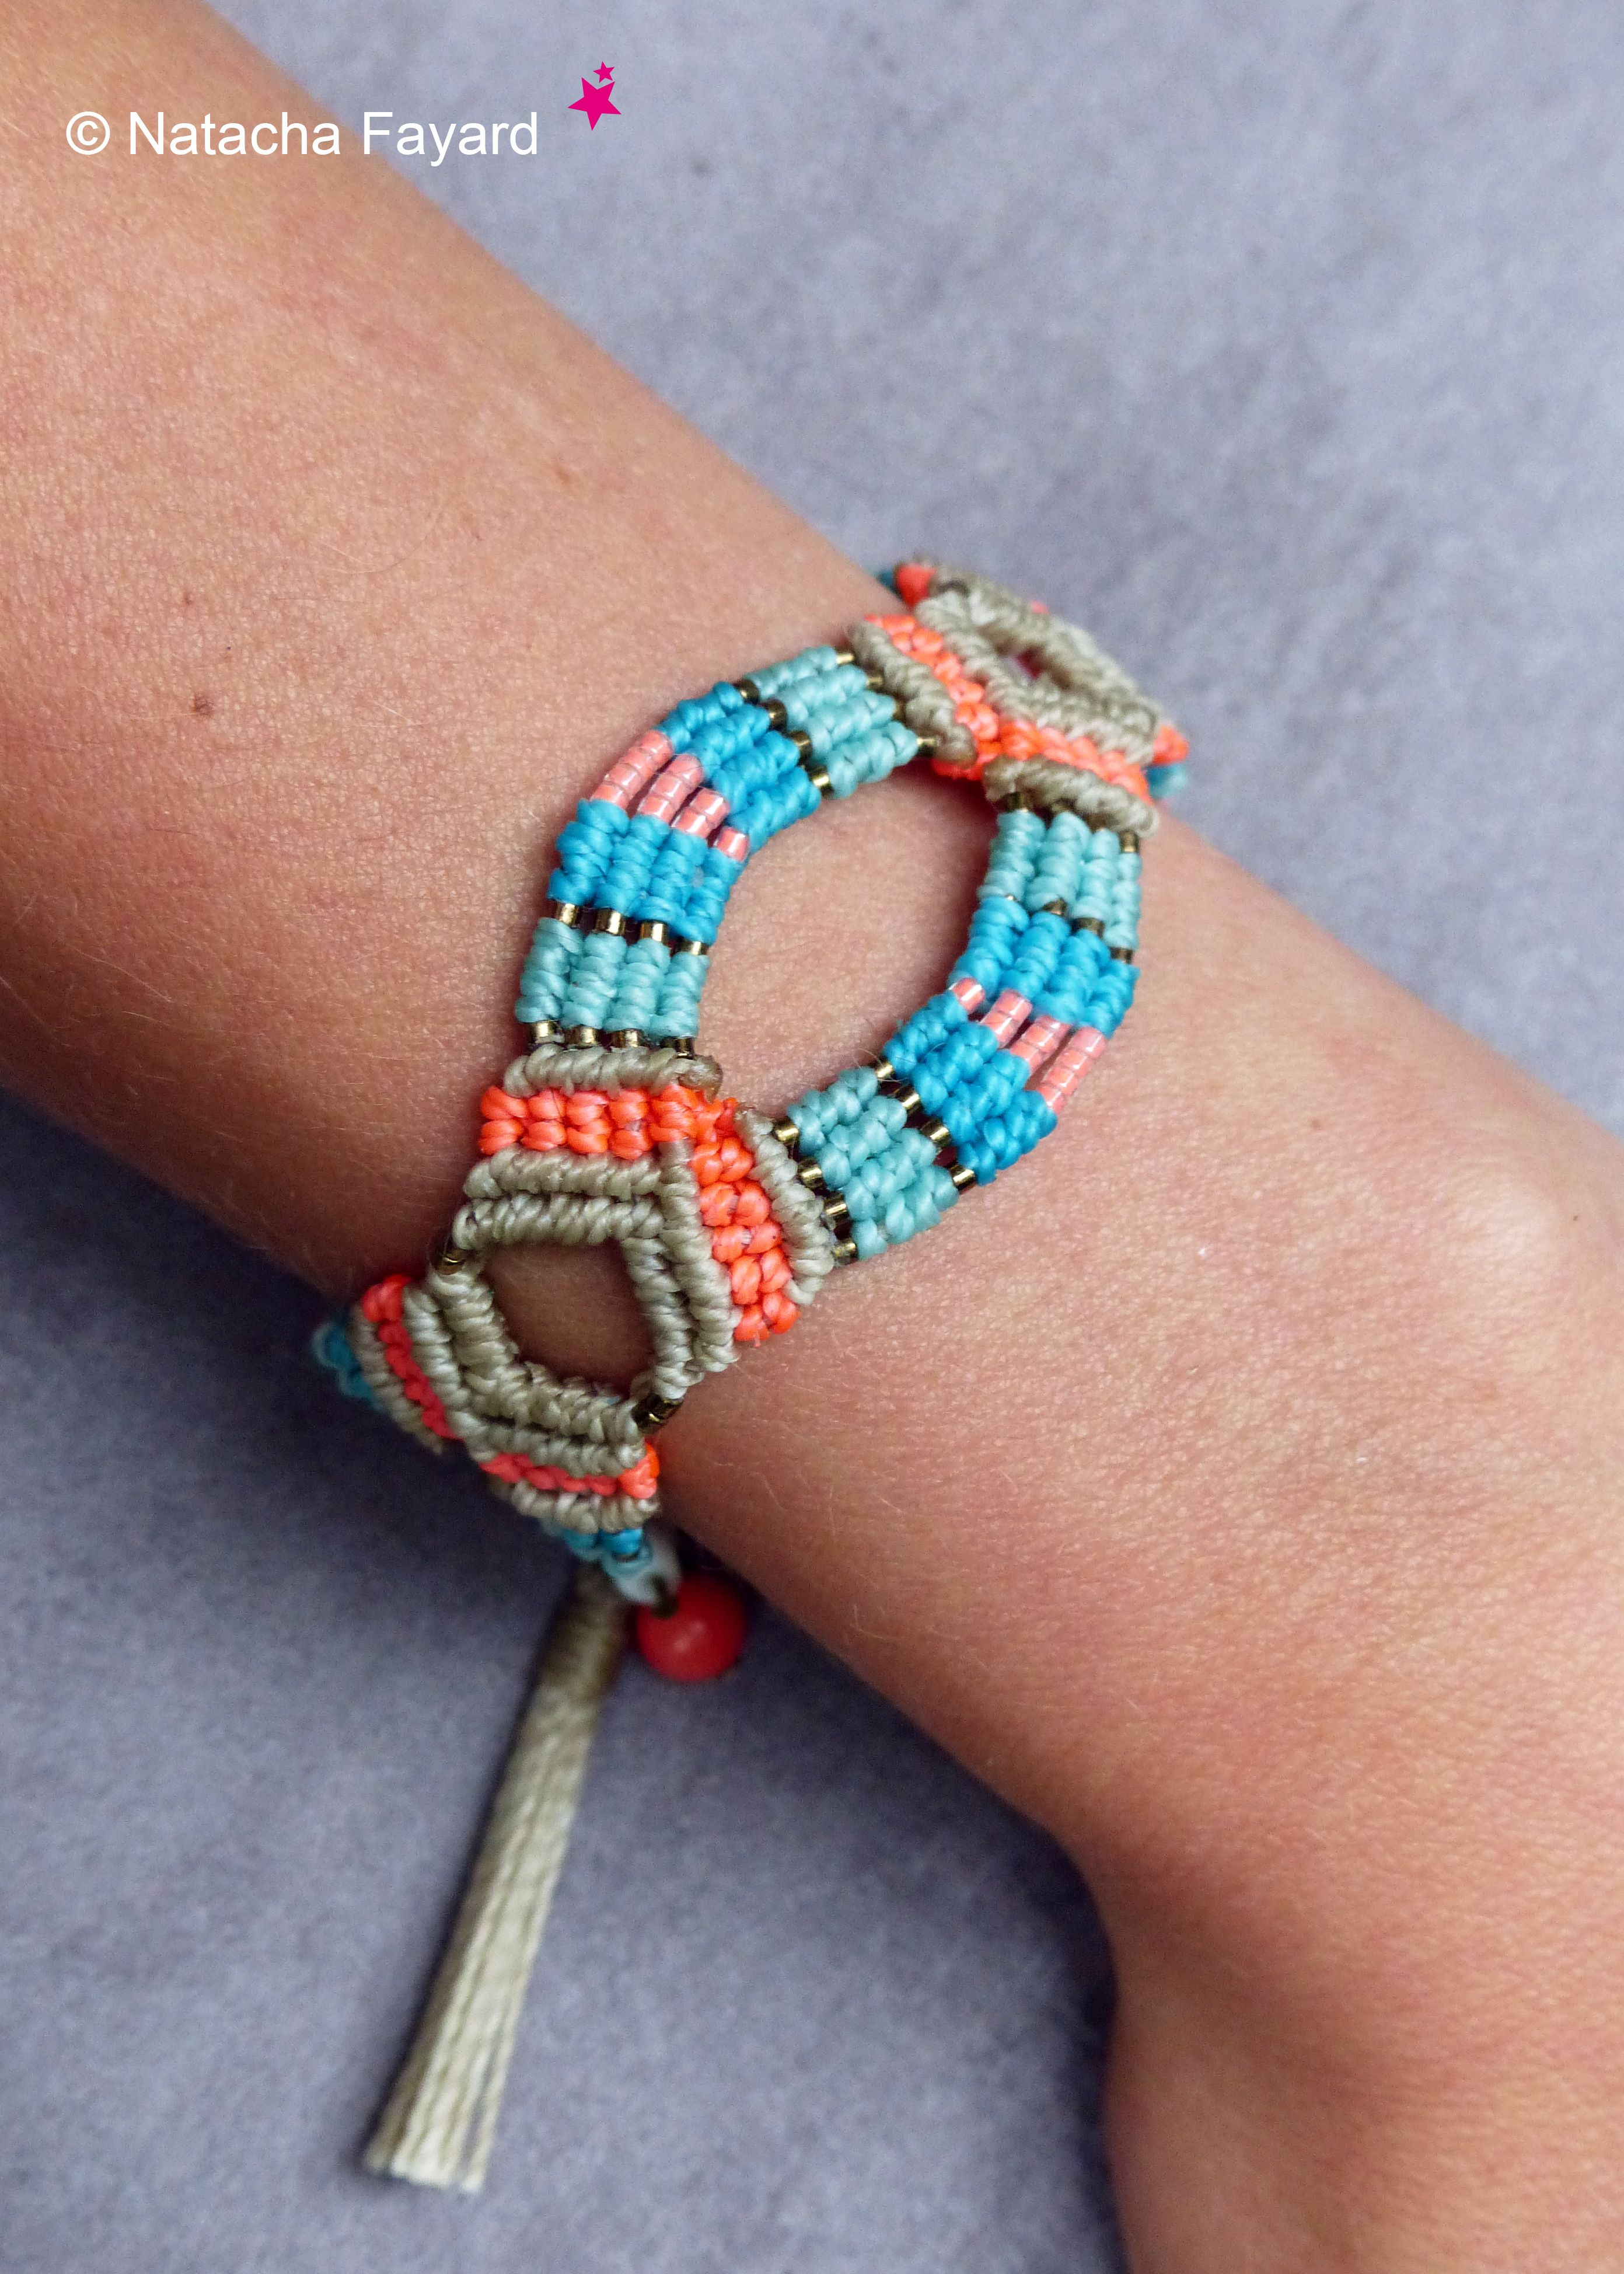 Boho chic micro macrame bracelet french designer jewelry Made in